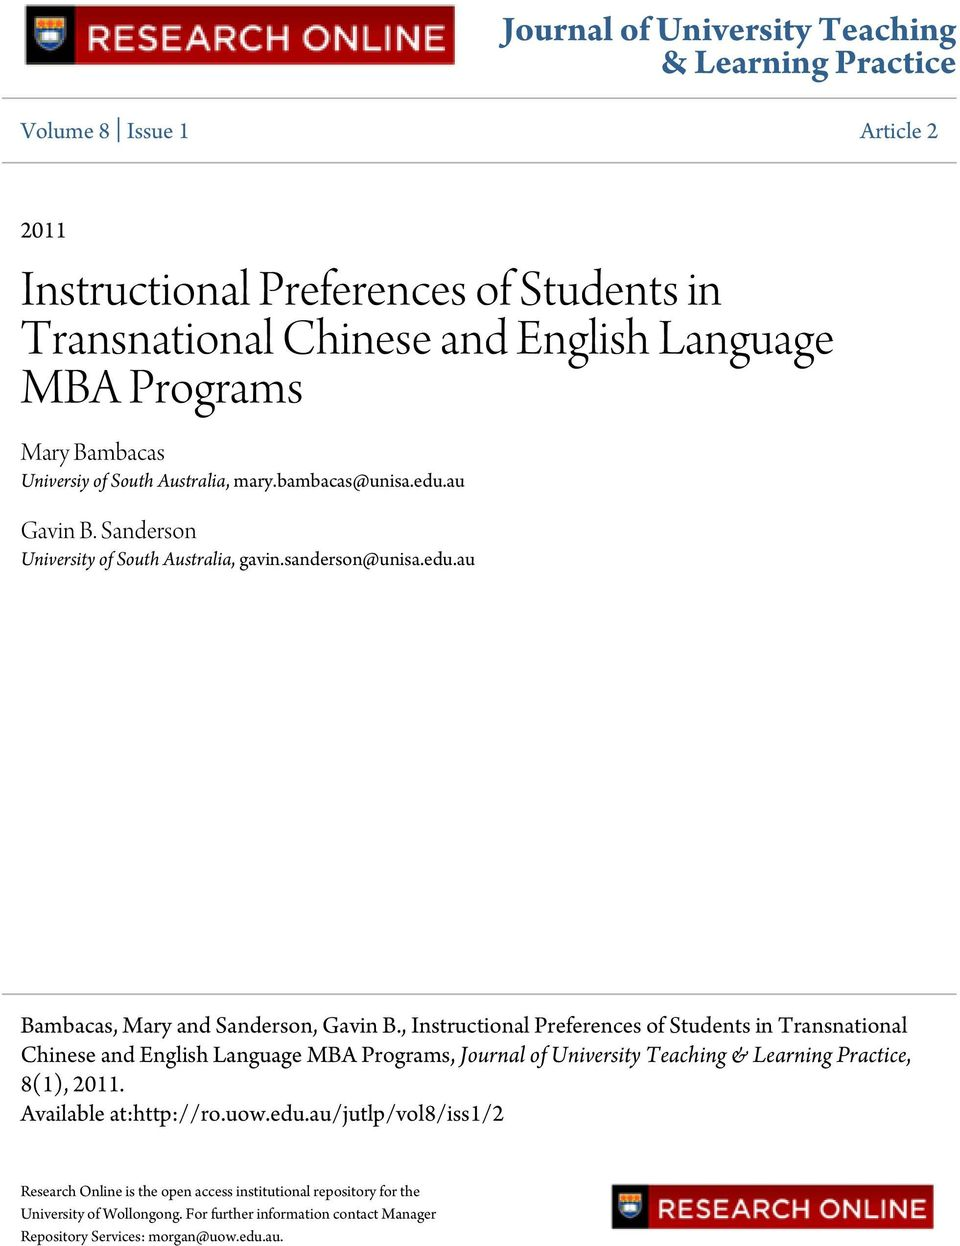 , Instructional Preferences of Students in Transnational Chinese and English Language MBA Programs, Journal of University Teaching & Learning Practice, 8(1), 2011. Available at:http://ro.